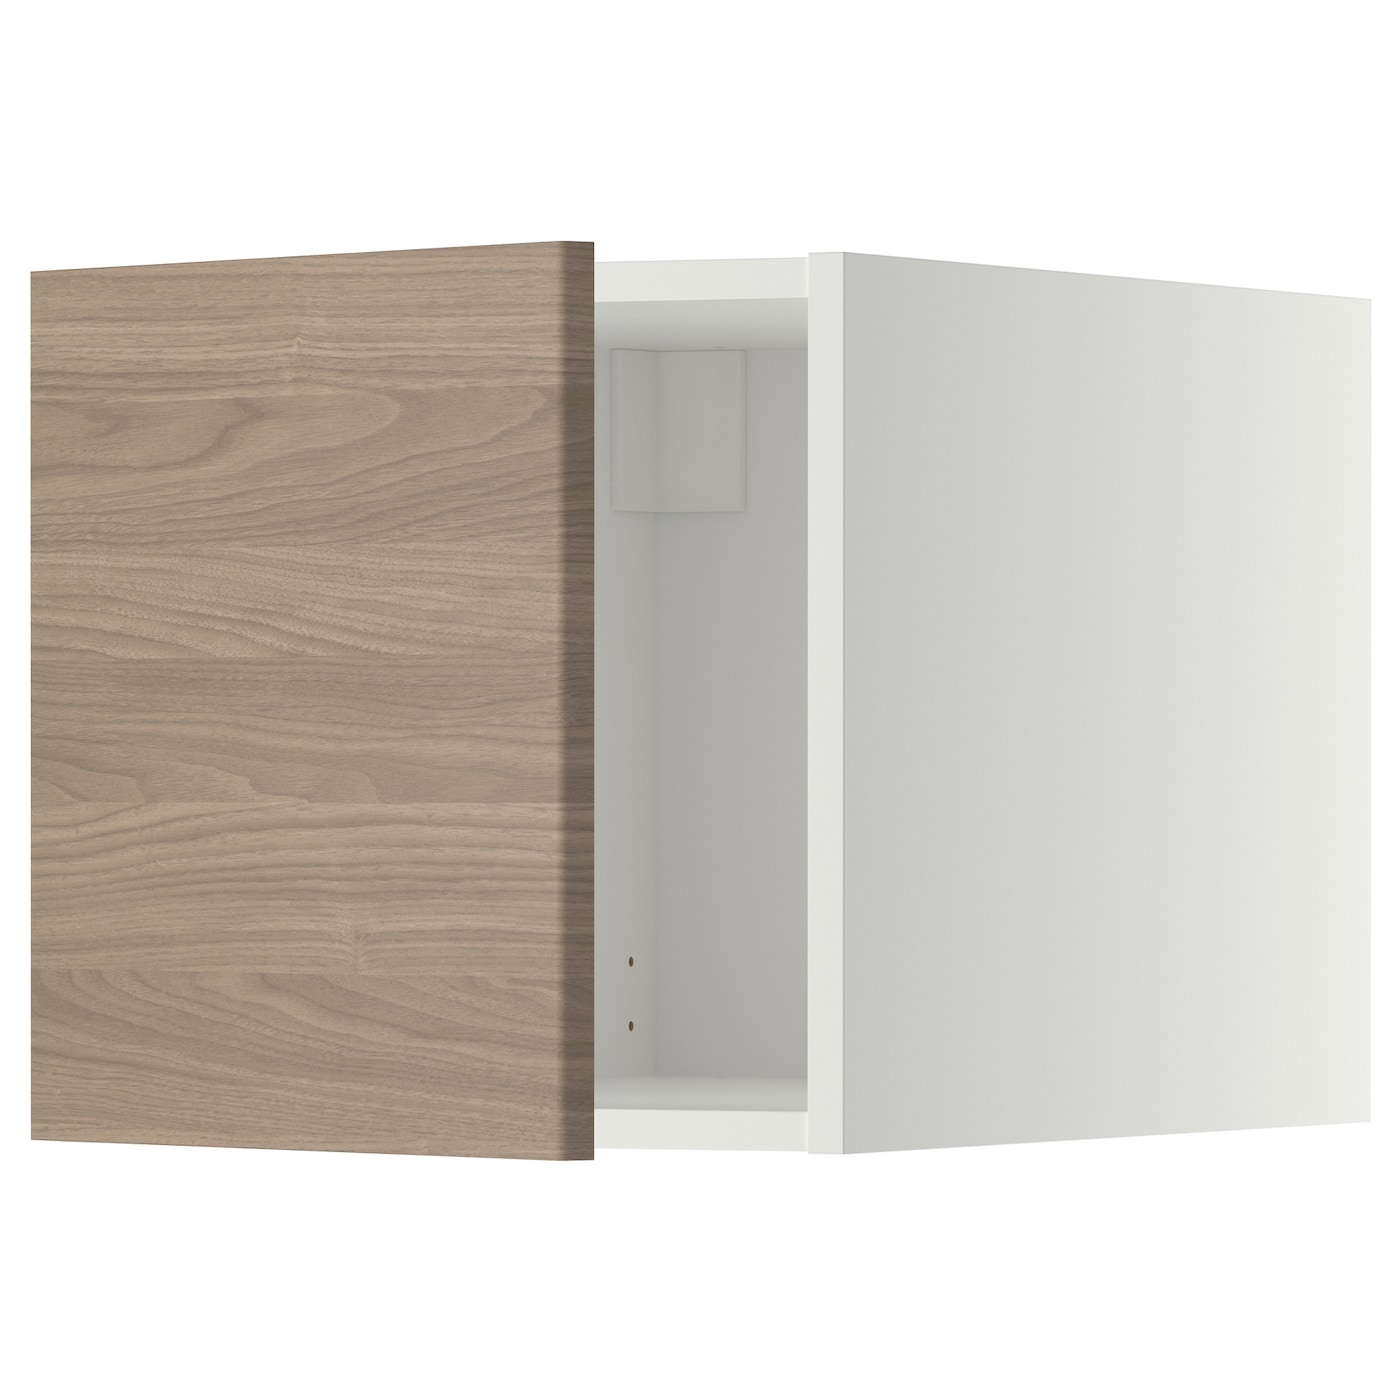 IKEA METOD Top Cabinet You Can Choose To Mount The Door On The Right  #776654 2000 2000 Pensili Per Cucina Ikea